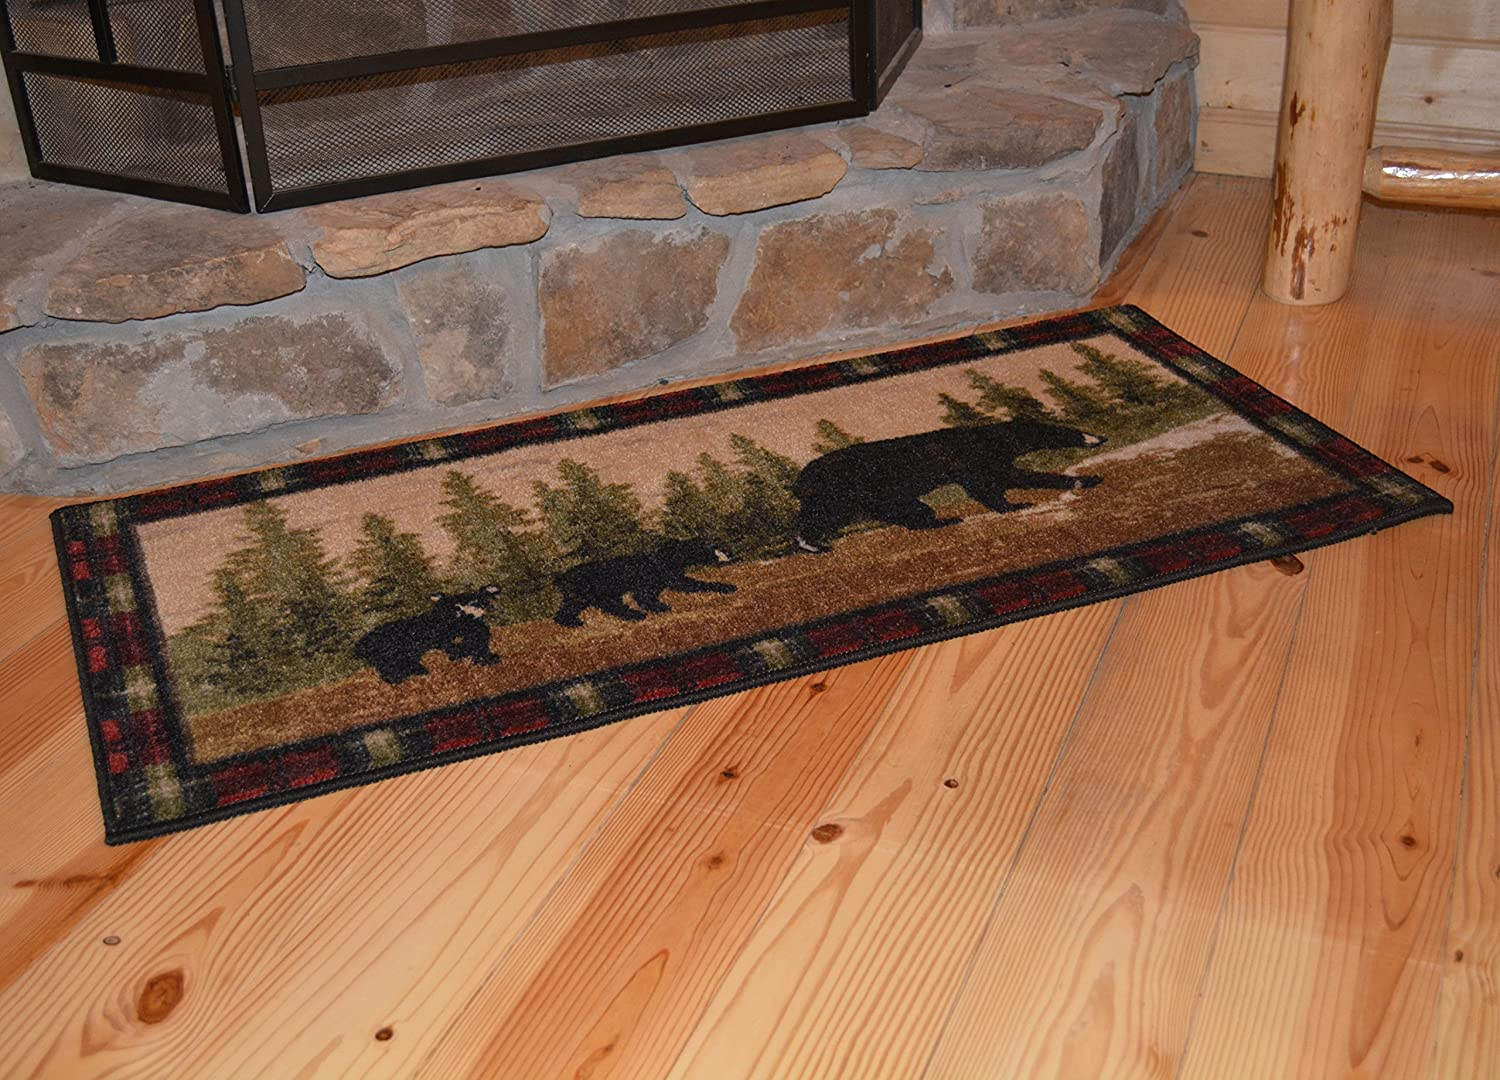 Cozy Cabin Kitchen Rug 19x31 Wedge Tall Rooster Wholesale Rug Source CC5266